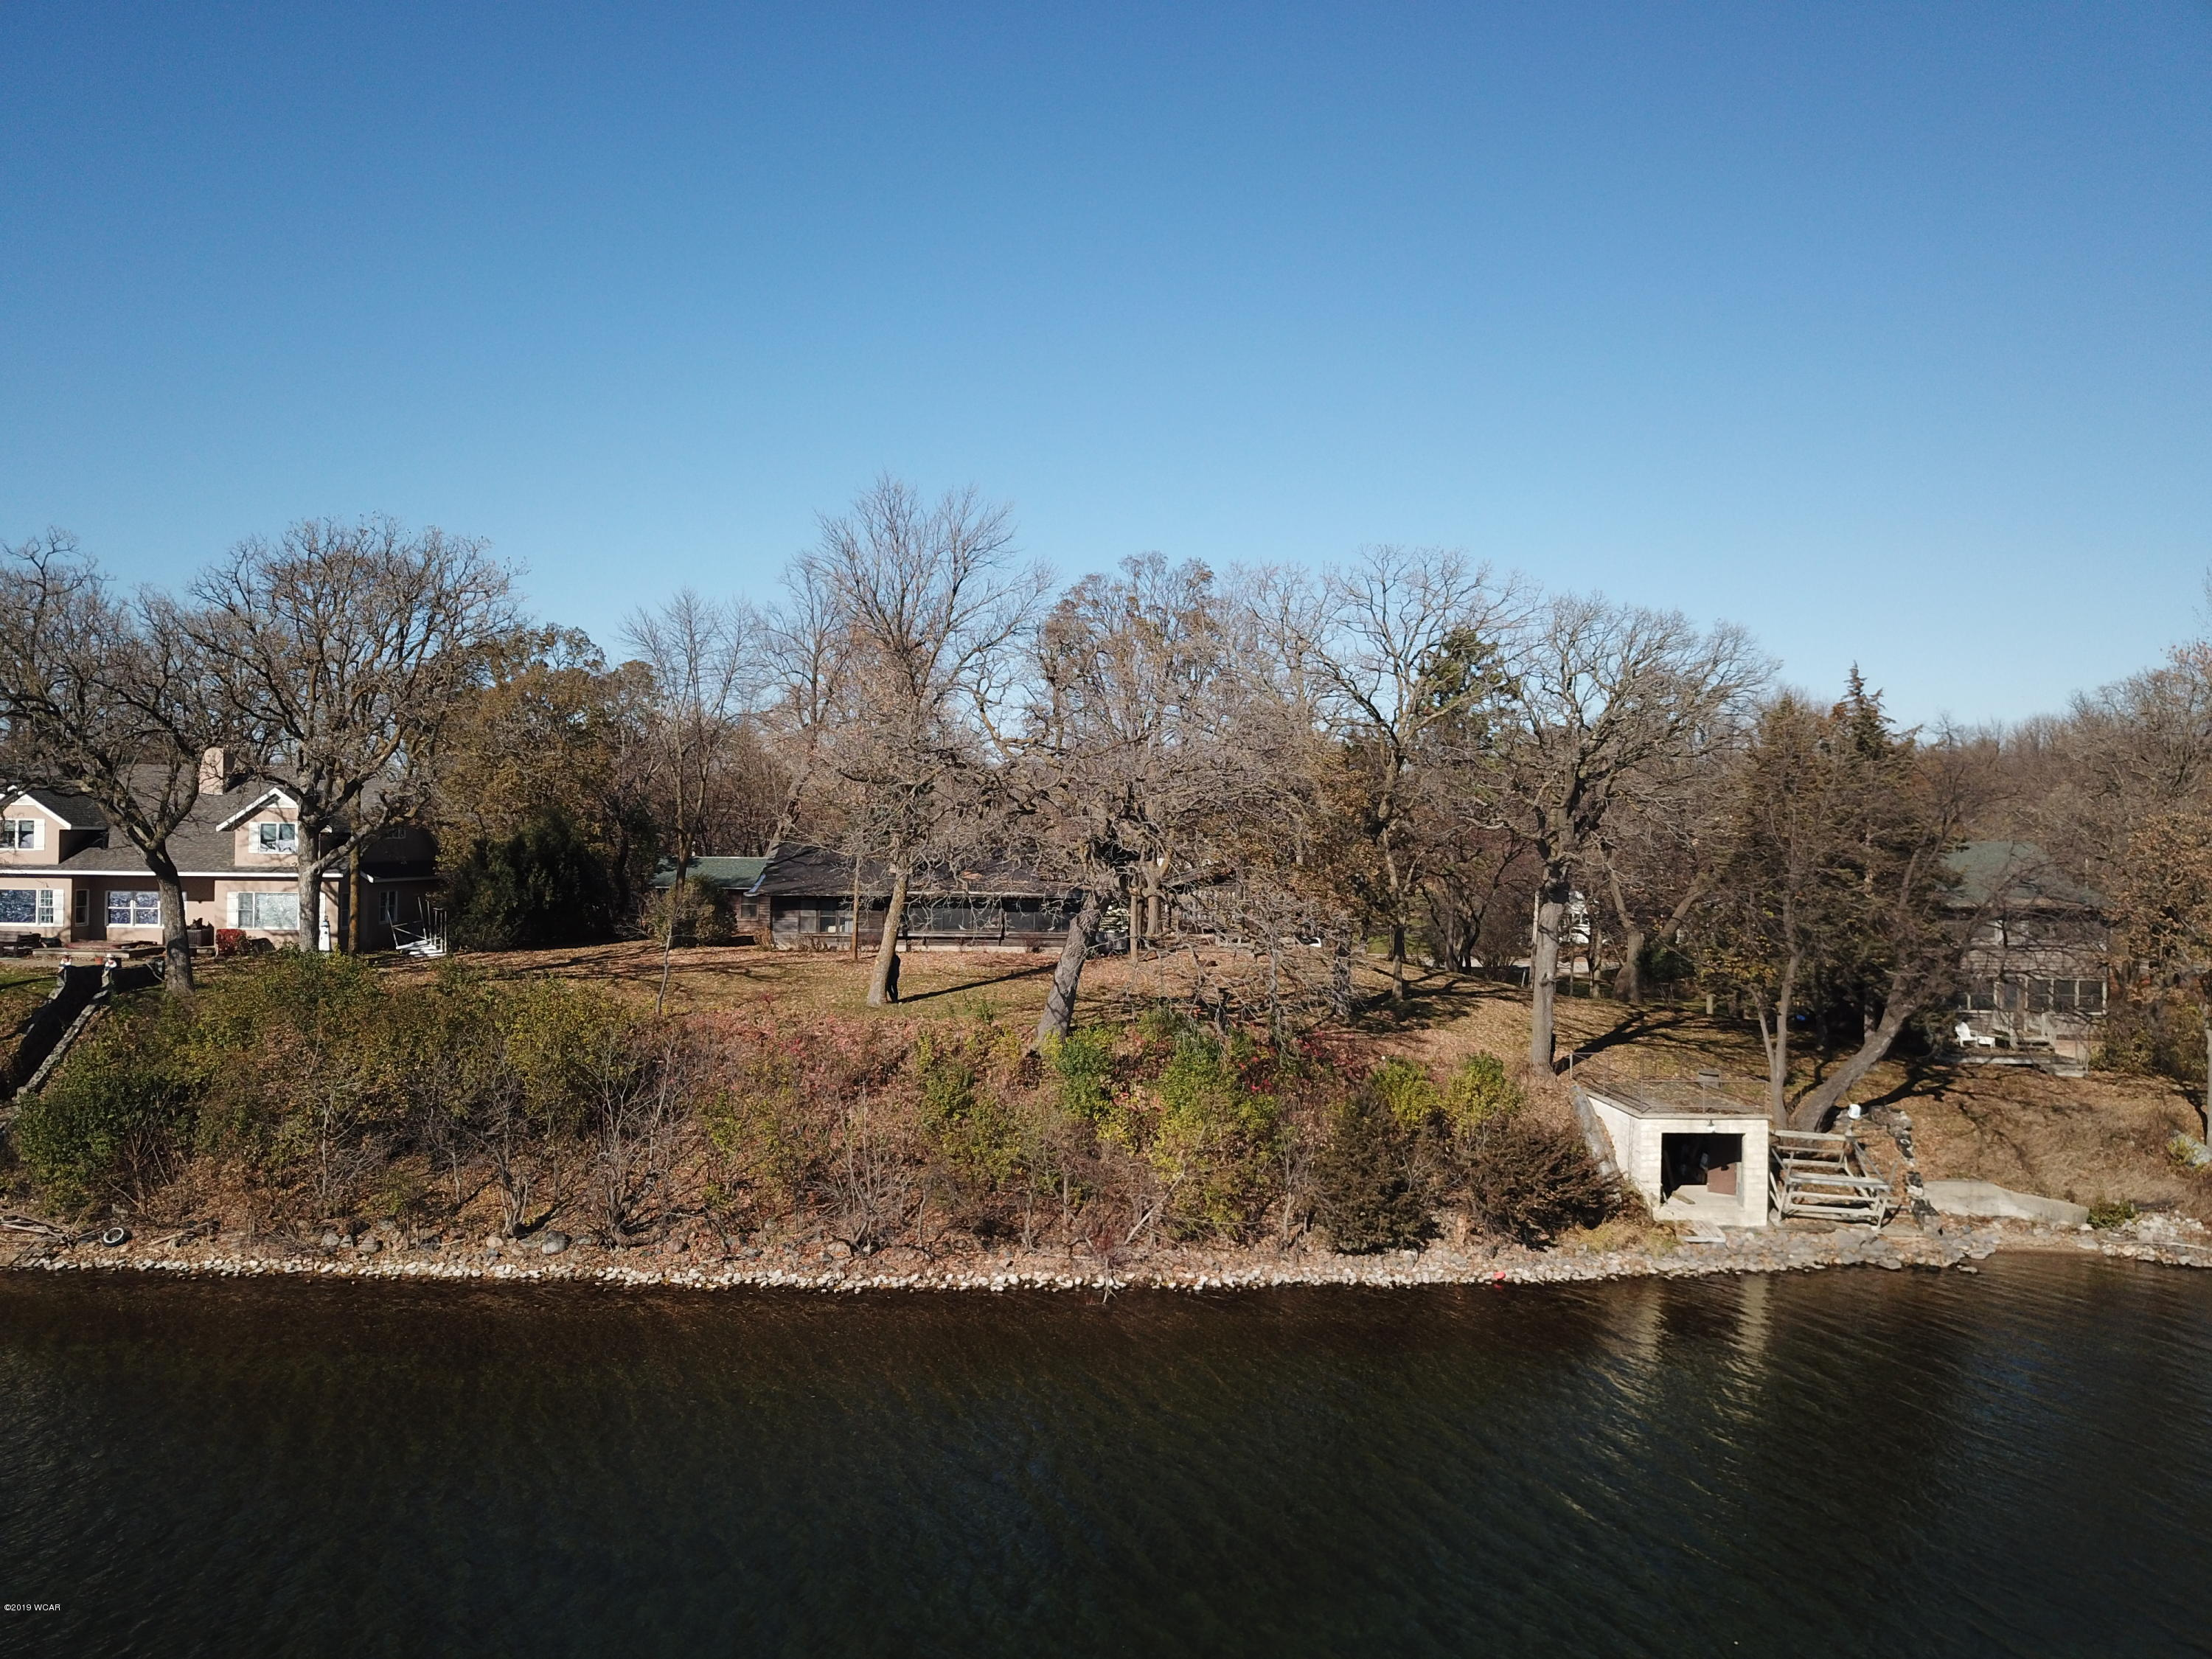 8243 N Shore Drive,Spicer,2 Bedrooms Bedrooms,1 BathroomBathrooms,Single Family,N Shore Drive,6033568